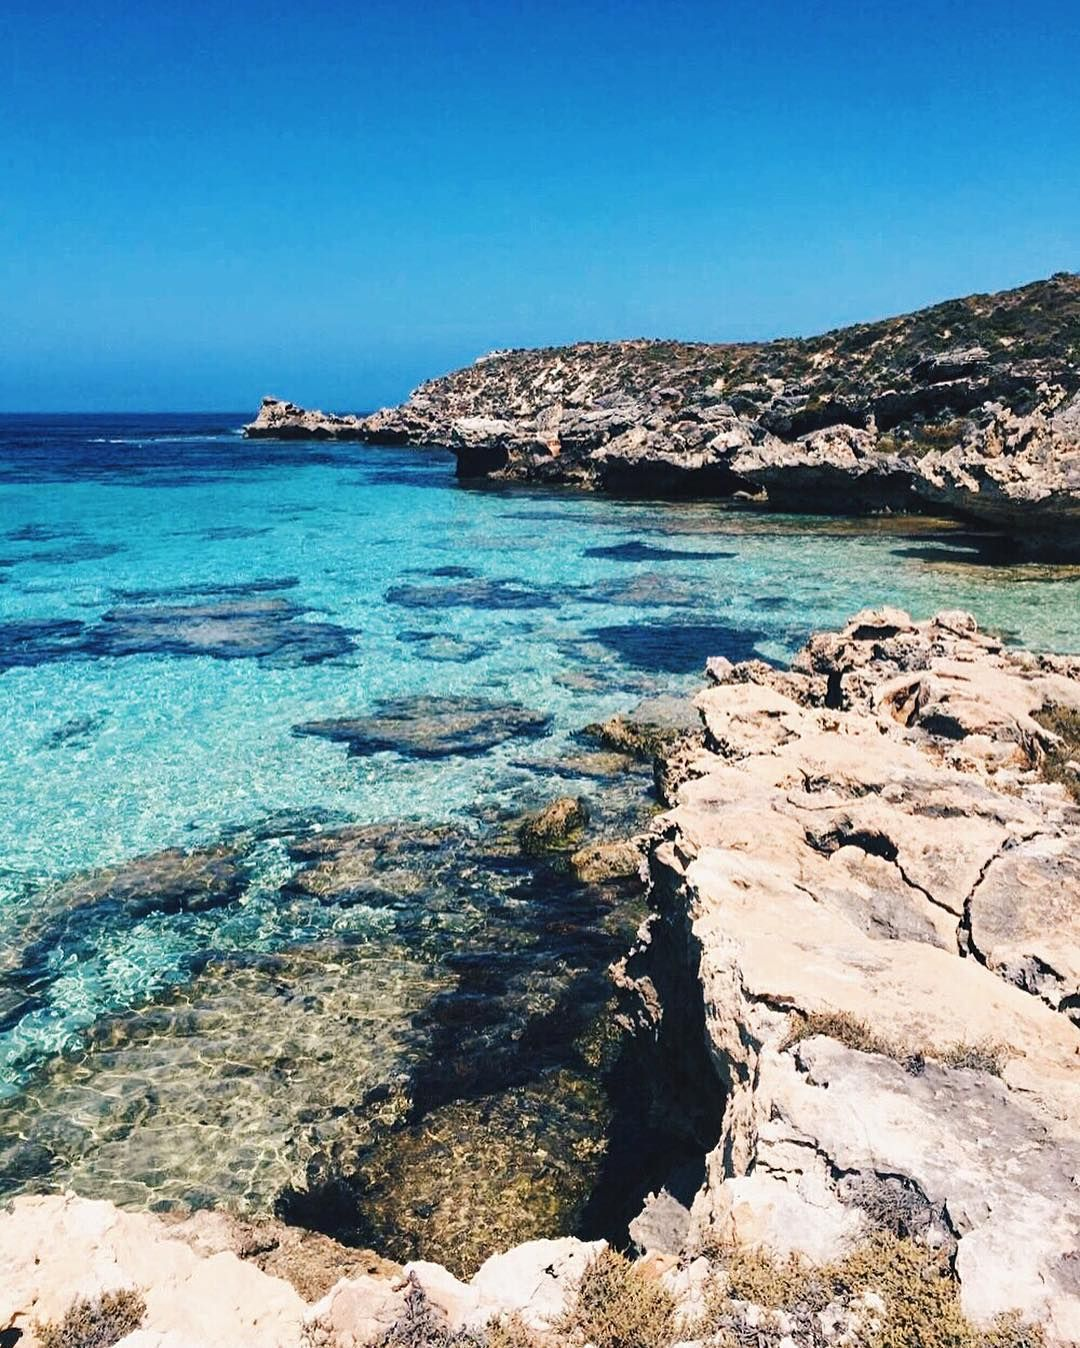 Where we'd rather be  exciting things to come  #rottnestisland by tikiboysco http://ift.tt/1L5GqLp